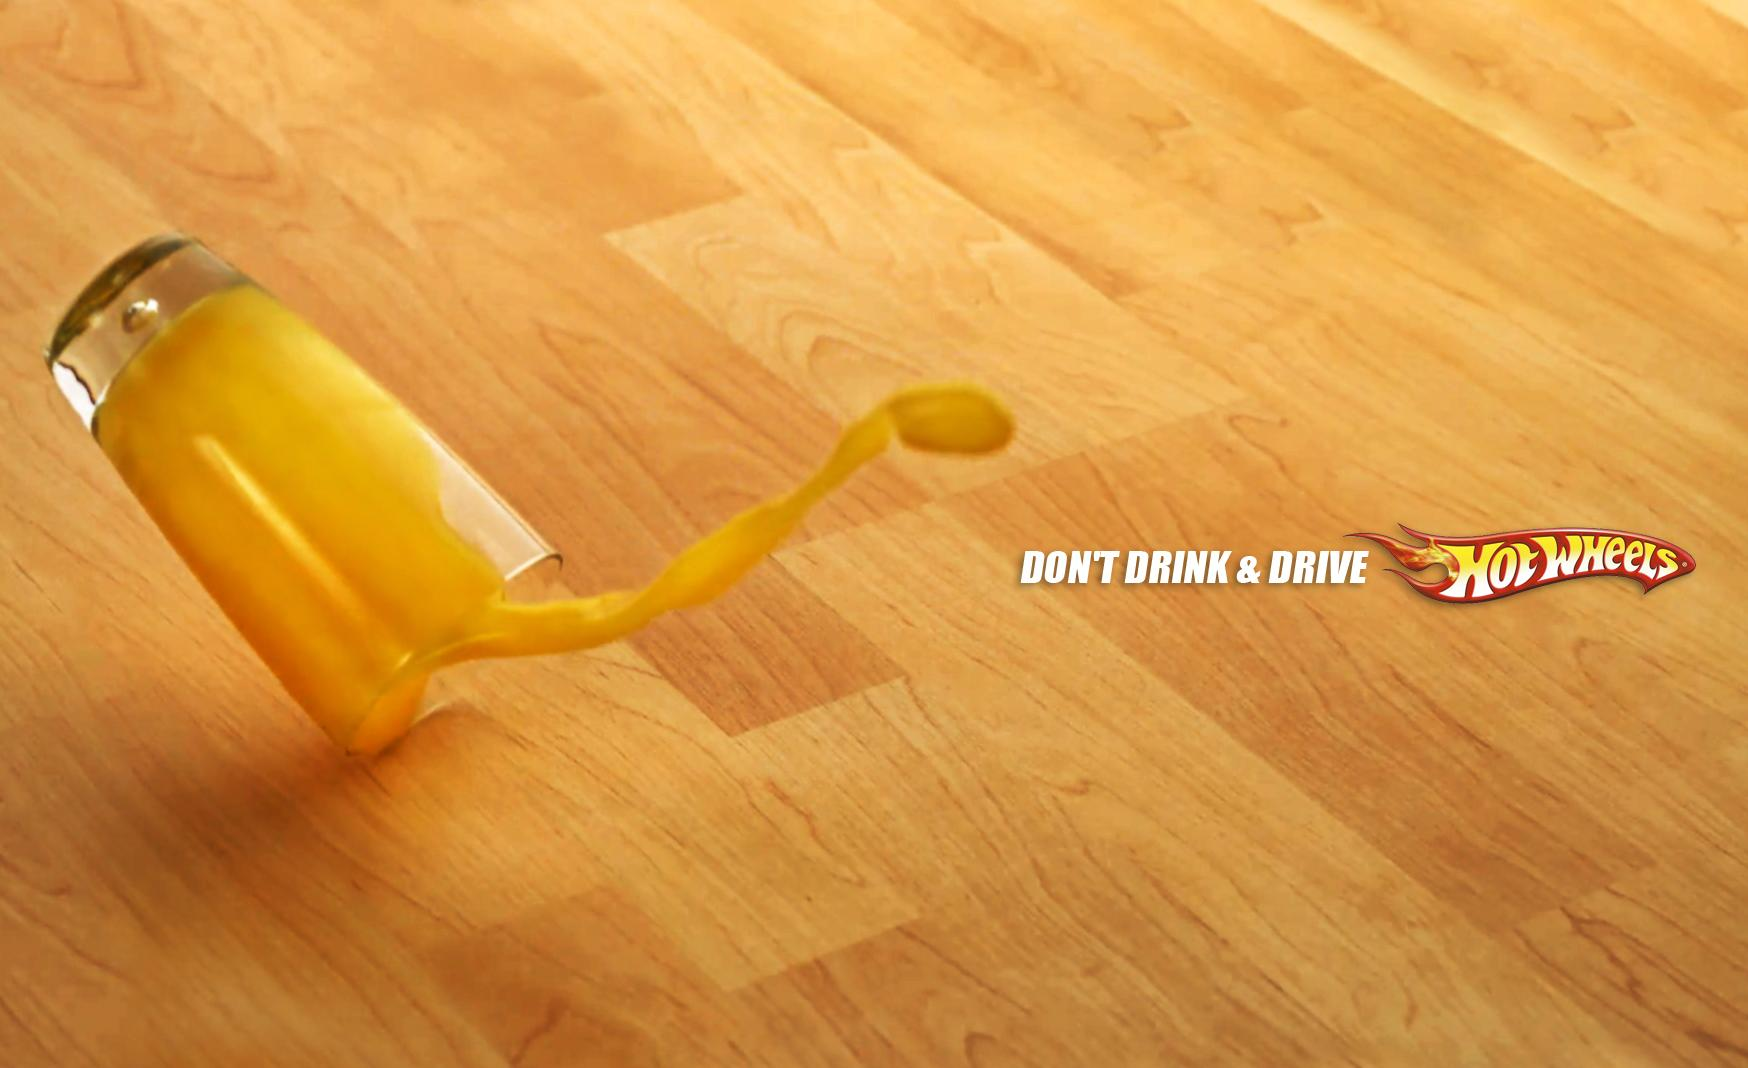 Hot Wheels Print Ad - Spilled Out - Juice